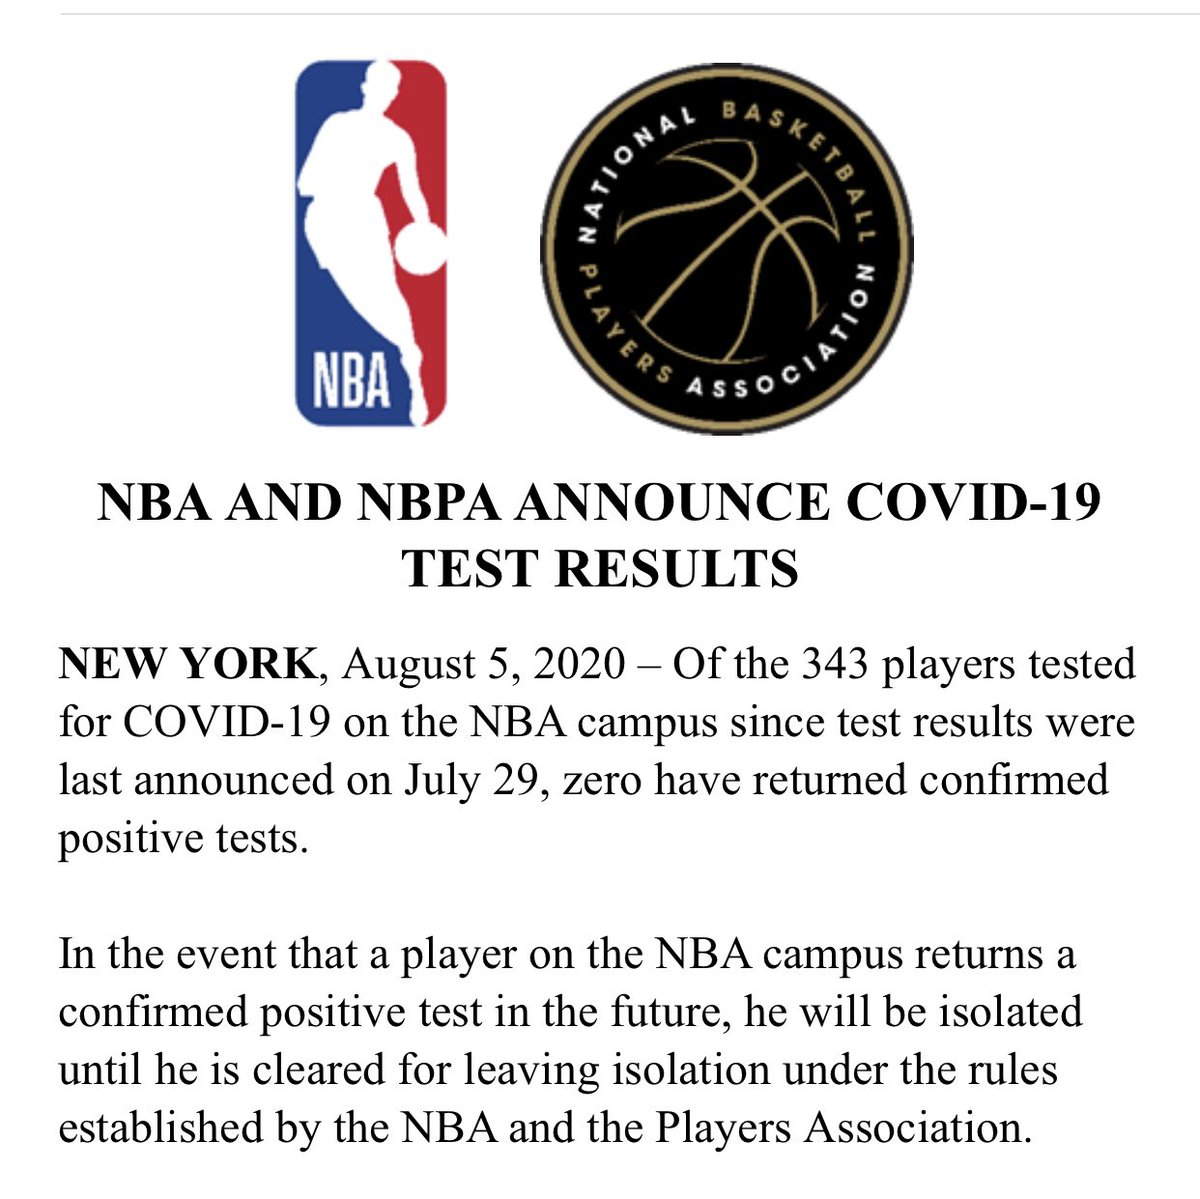 Testing update from the NBA: Of the 343 players tested daily since the league last announced results on July 29 ... zero confirmed positive tests https://t.co/A5NgMoBUEV